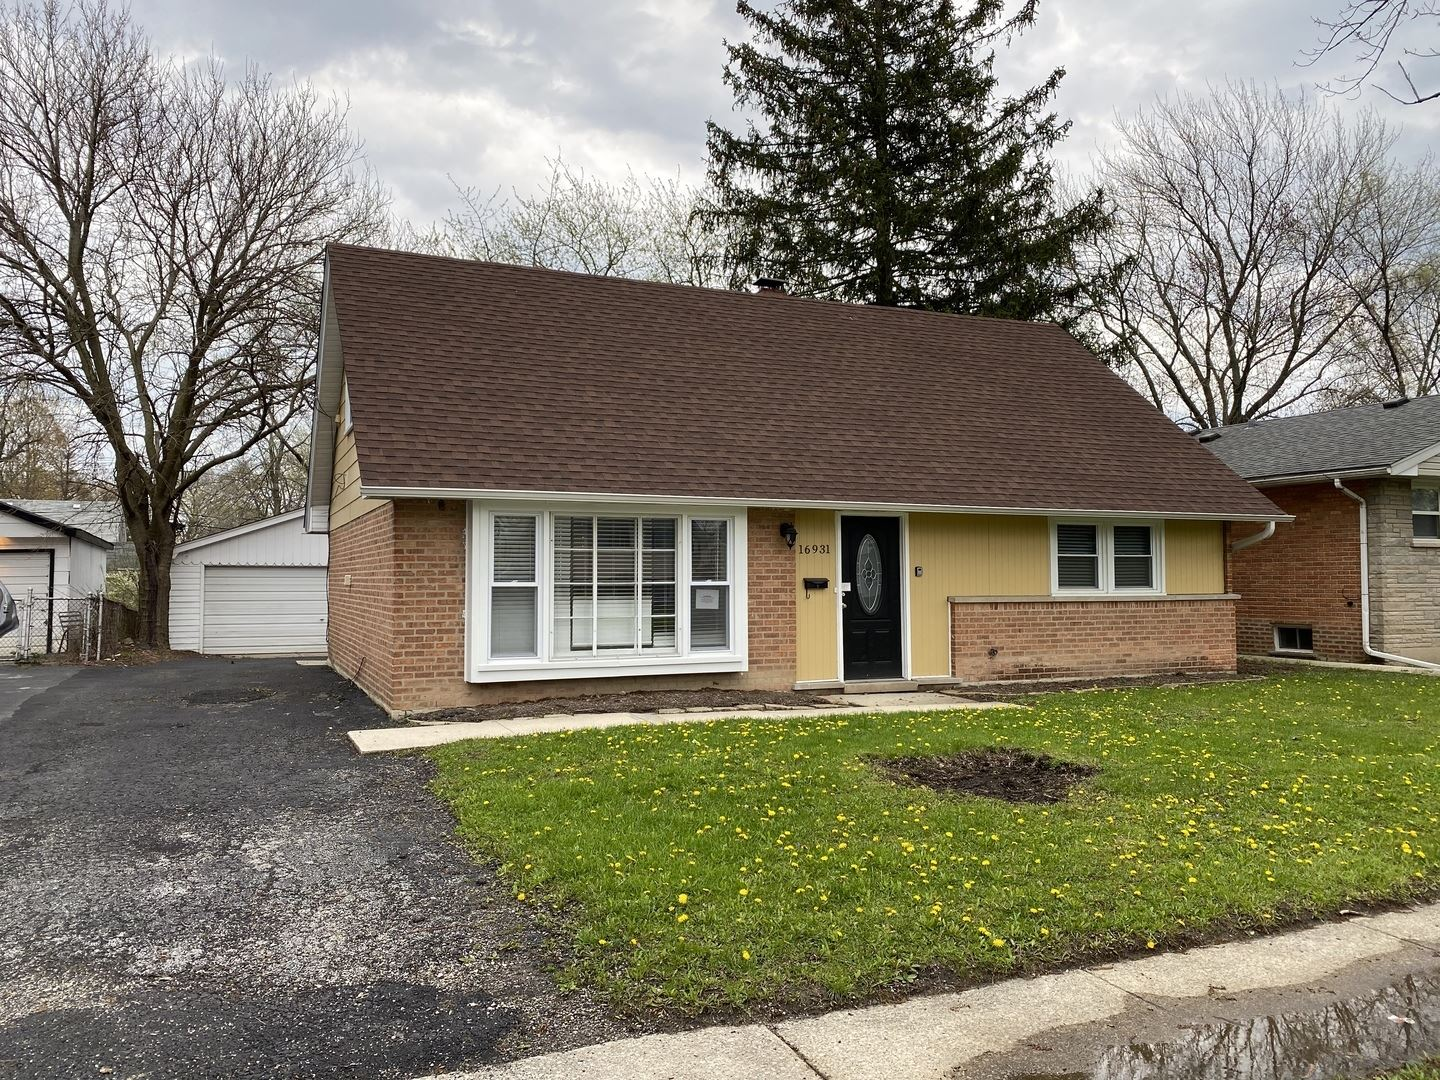 16931 Old Elm Drive, Country Club Hills, IL 60478 - #: 10731852